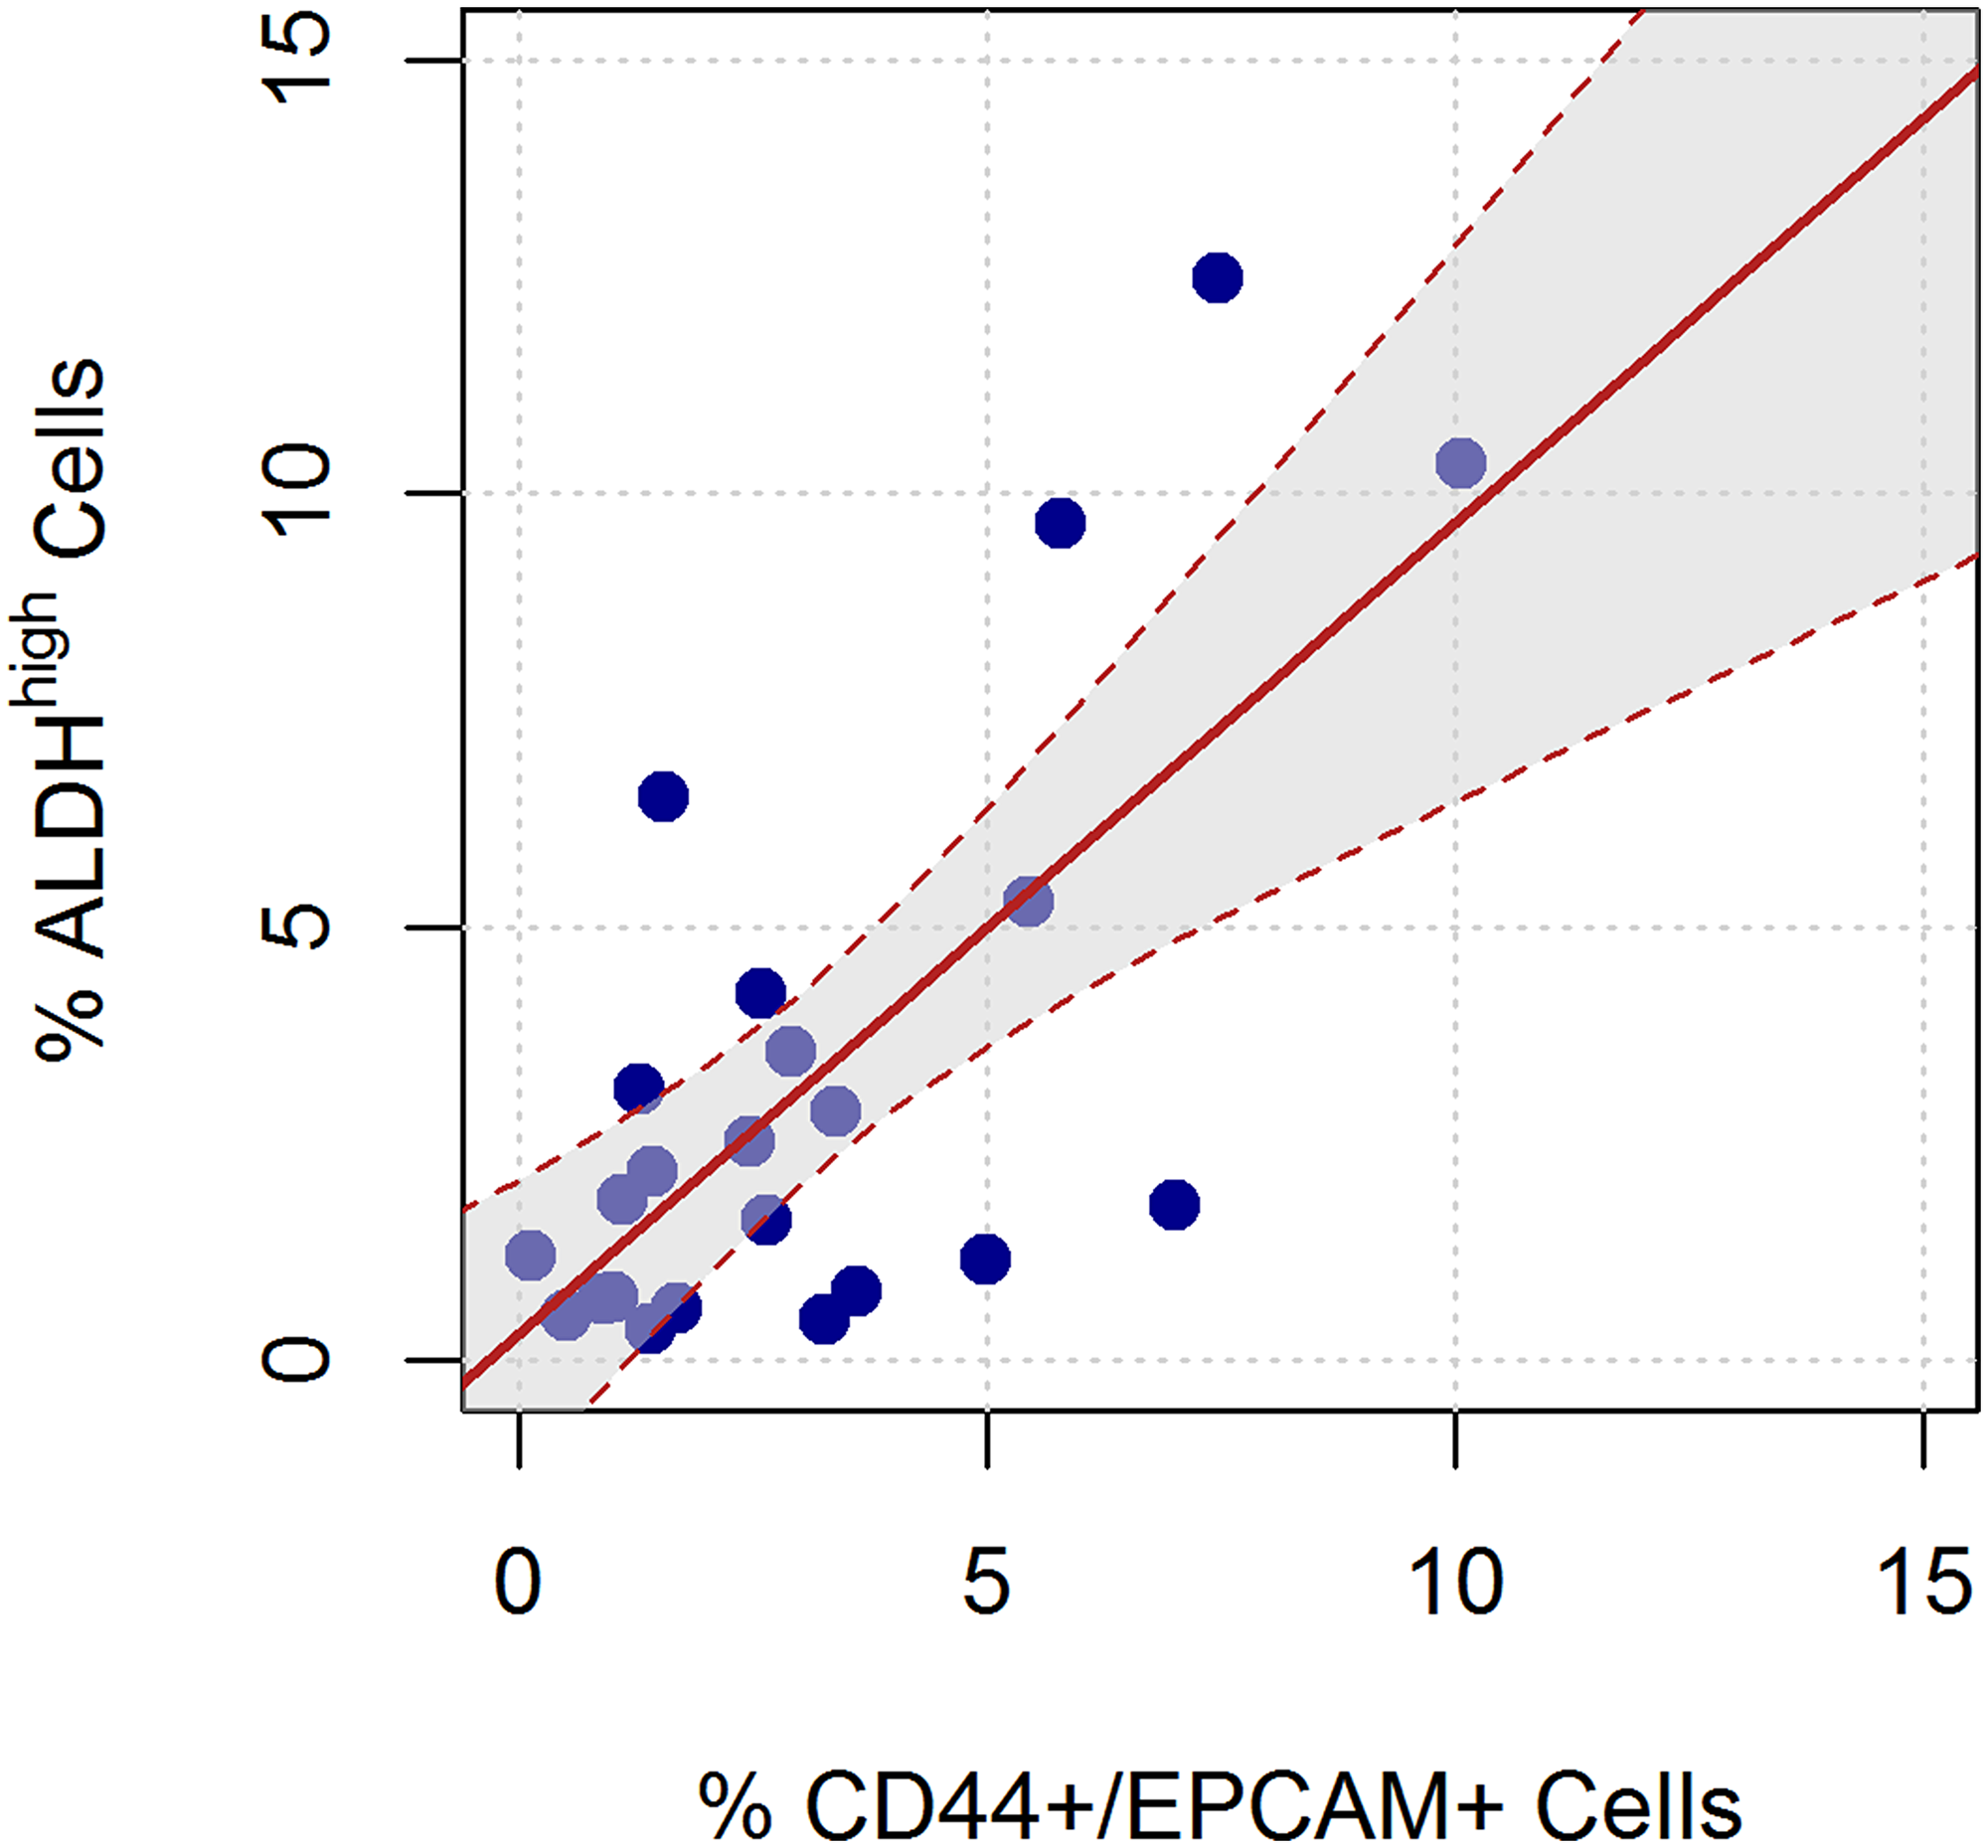 Linear relation between the ALDHhigh and CD44+/EPCAM+ sorted cells.